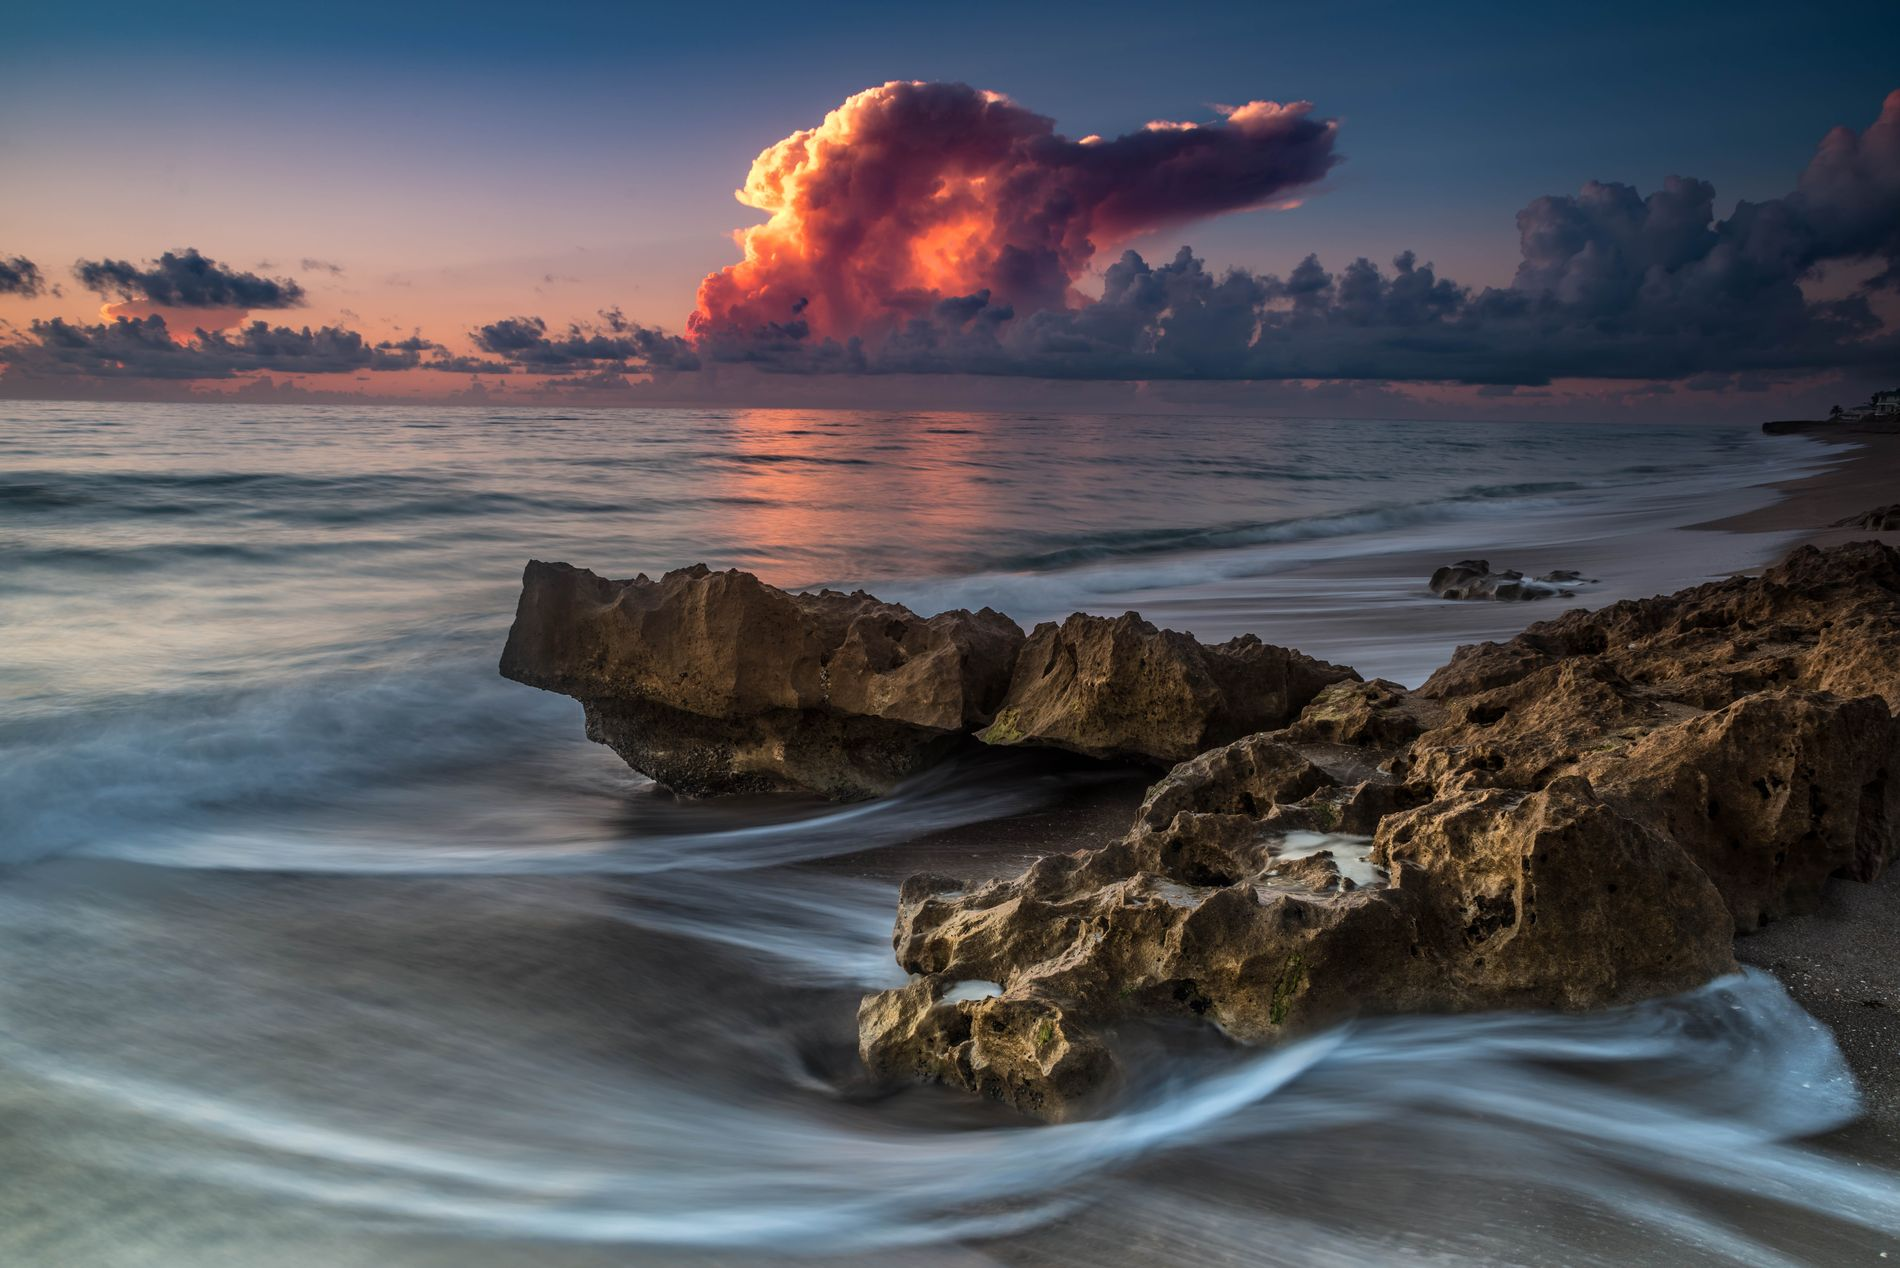 Mark-Giacobba-4 MCP Actions Sponsored GuruShots Shooting Clouds Photo Challenge Winners Contests